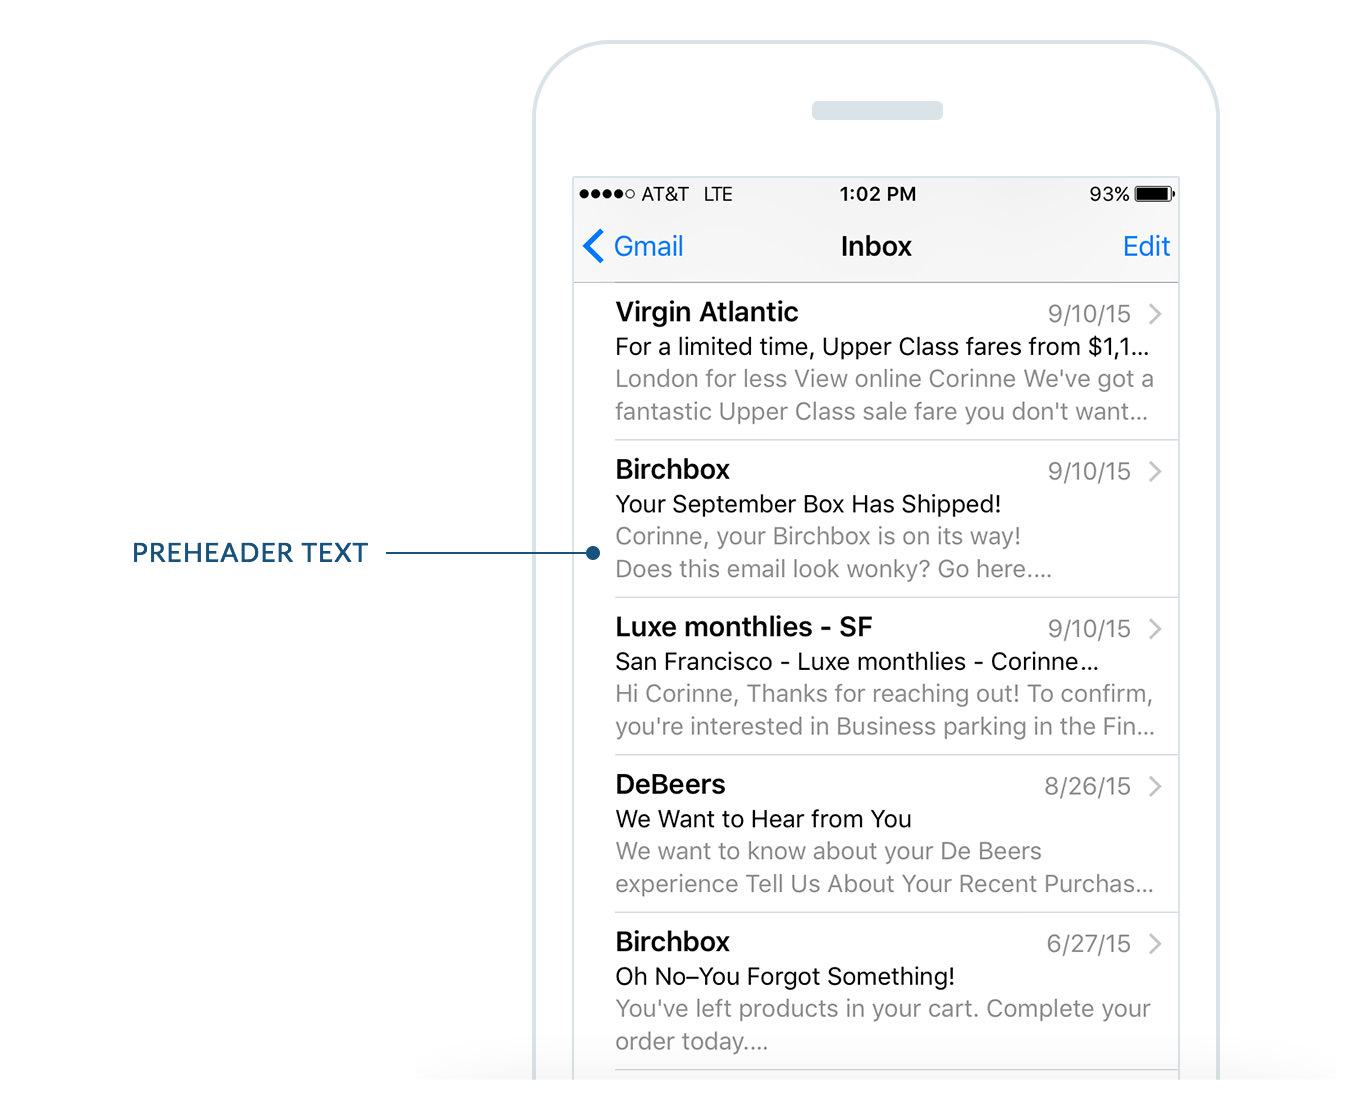 email marketing in the mobile era optimize for mobile campaign